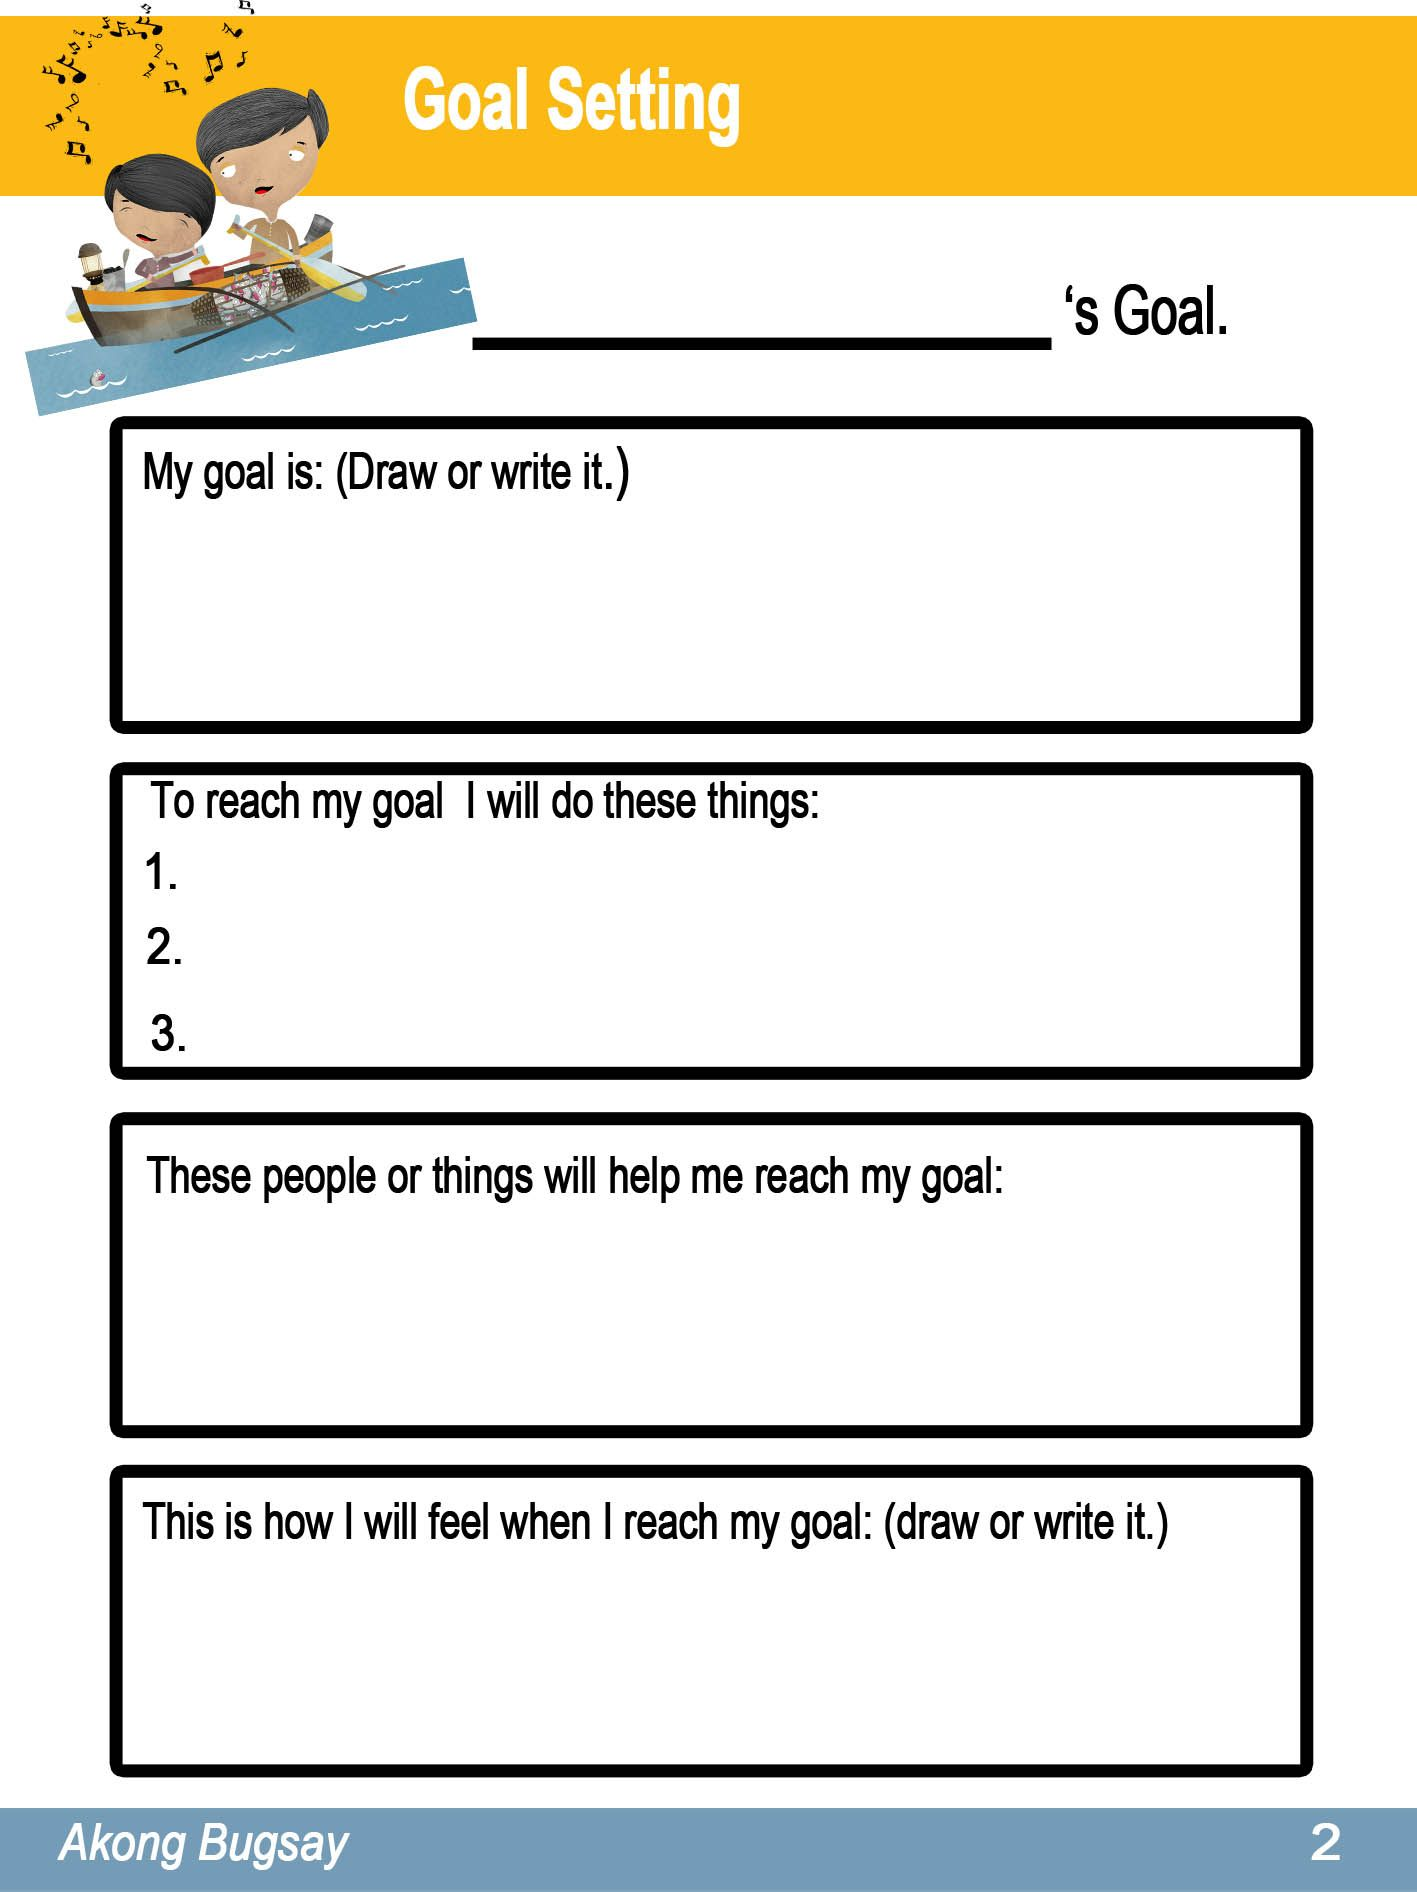 Goalsetting Copy 1 417 1 892 Pixels